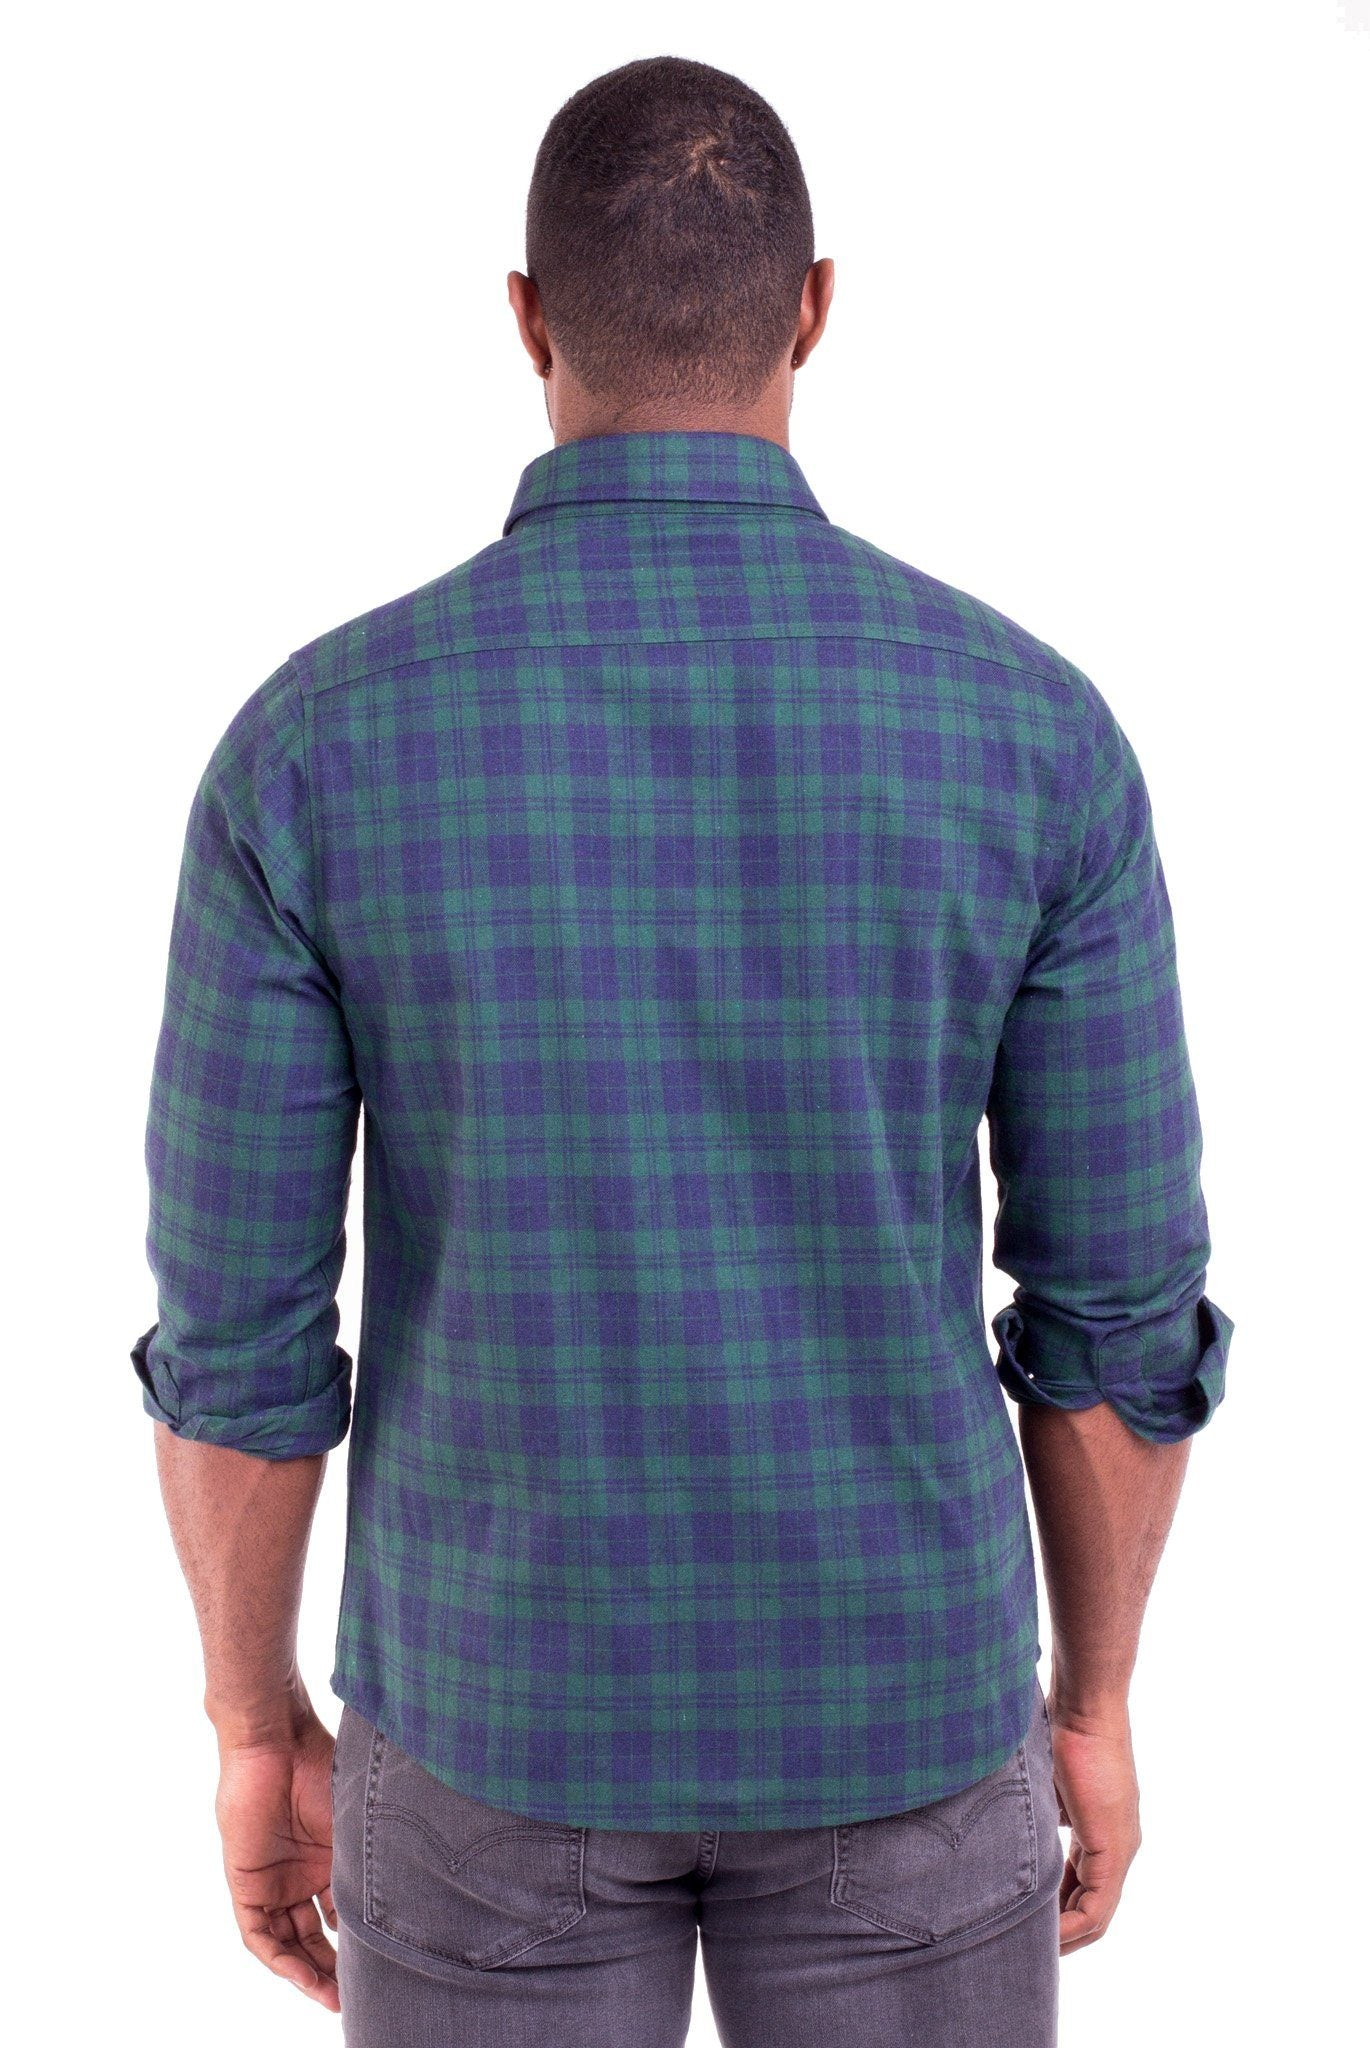 JOHNNY GREEN/BLUE PLAID FLANNEL SHIRT | Poor Little Rich Boy Clothing